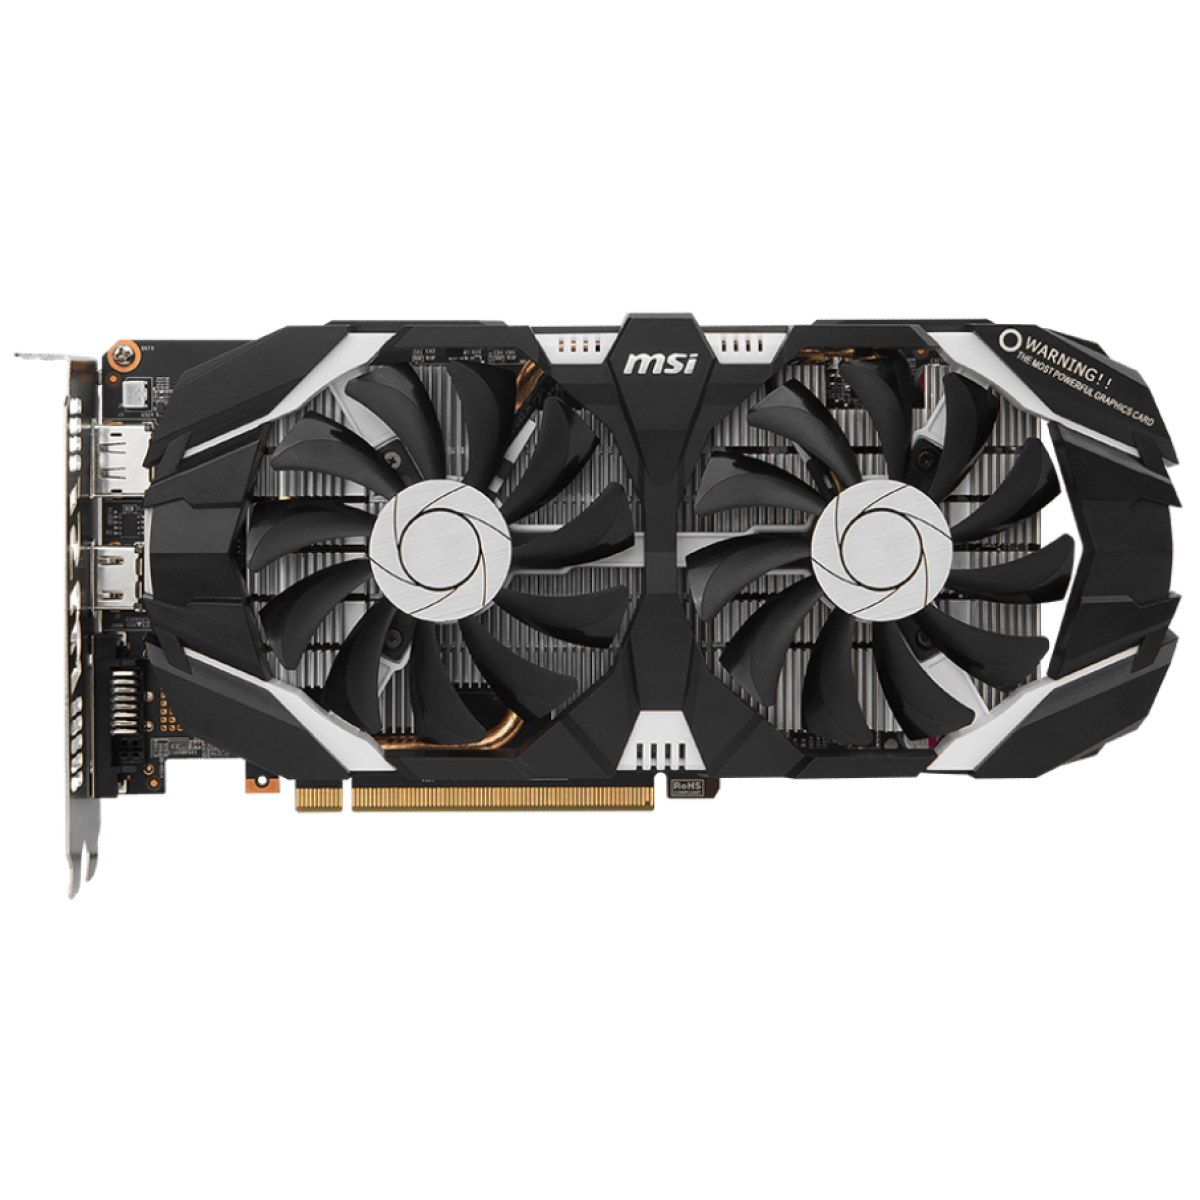 Placa de Video GeForce MSI GTX 1060 6GT Dual OC, 6GB GDDR5, 192 Bit